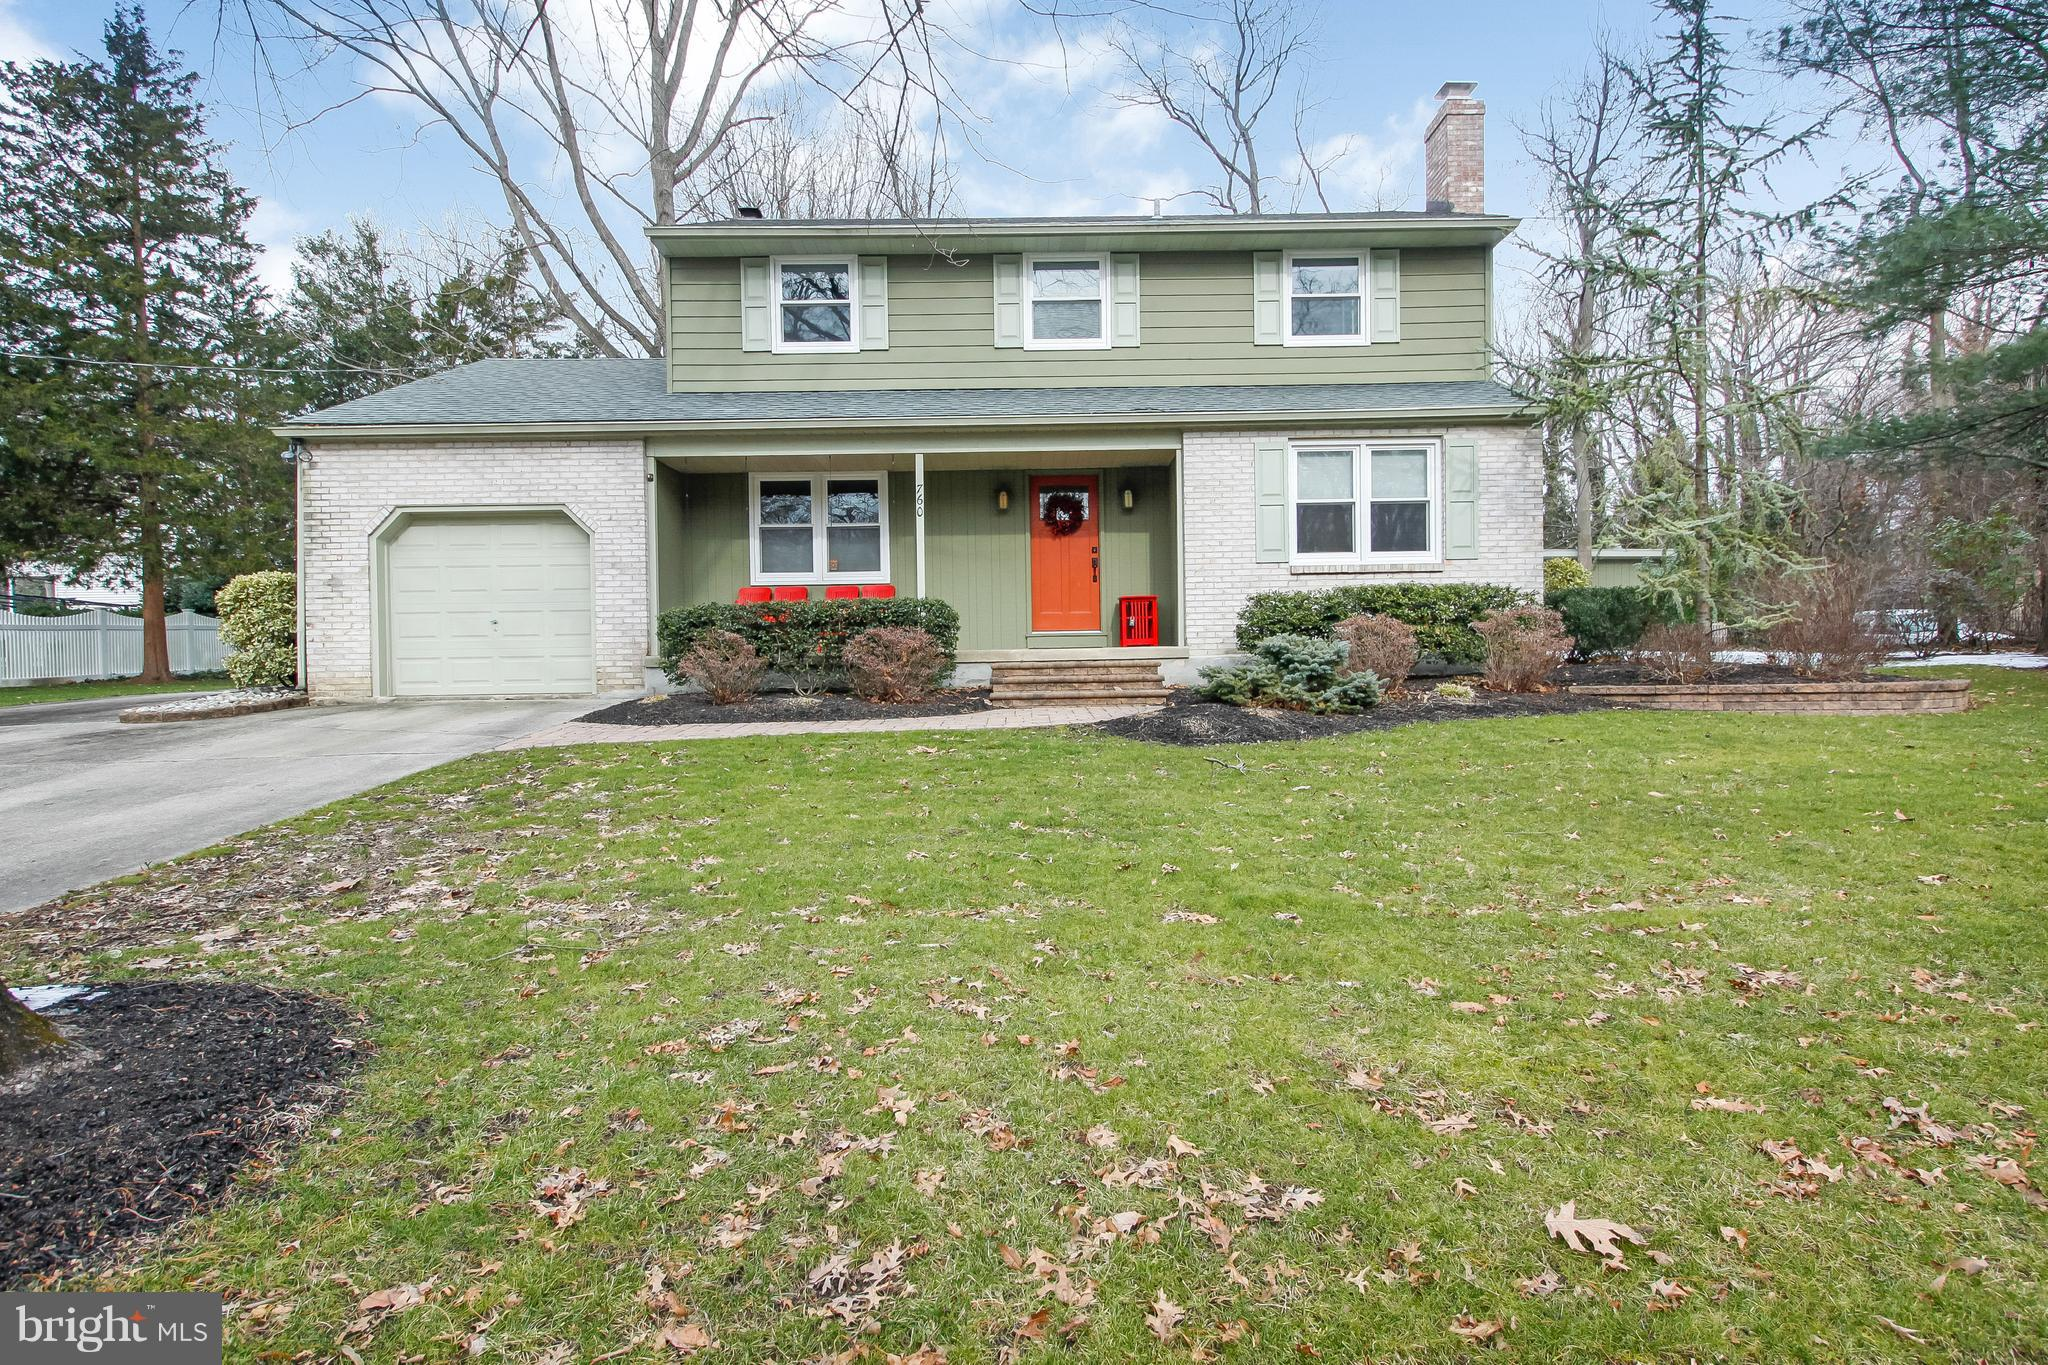 760 MYRTLE, WEST DEPTFORD, NJ 08086